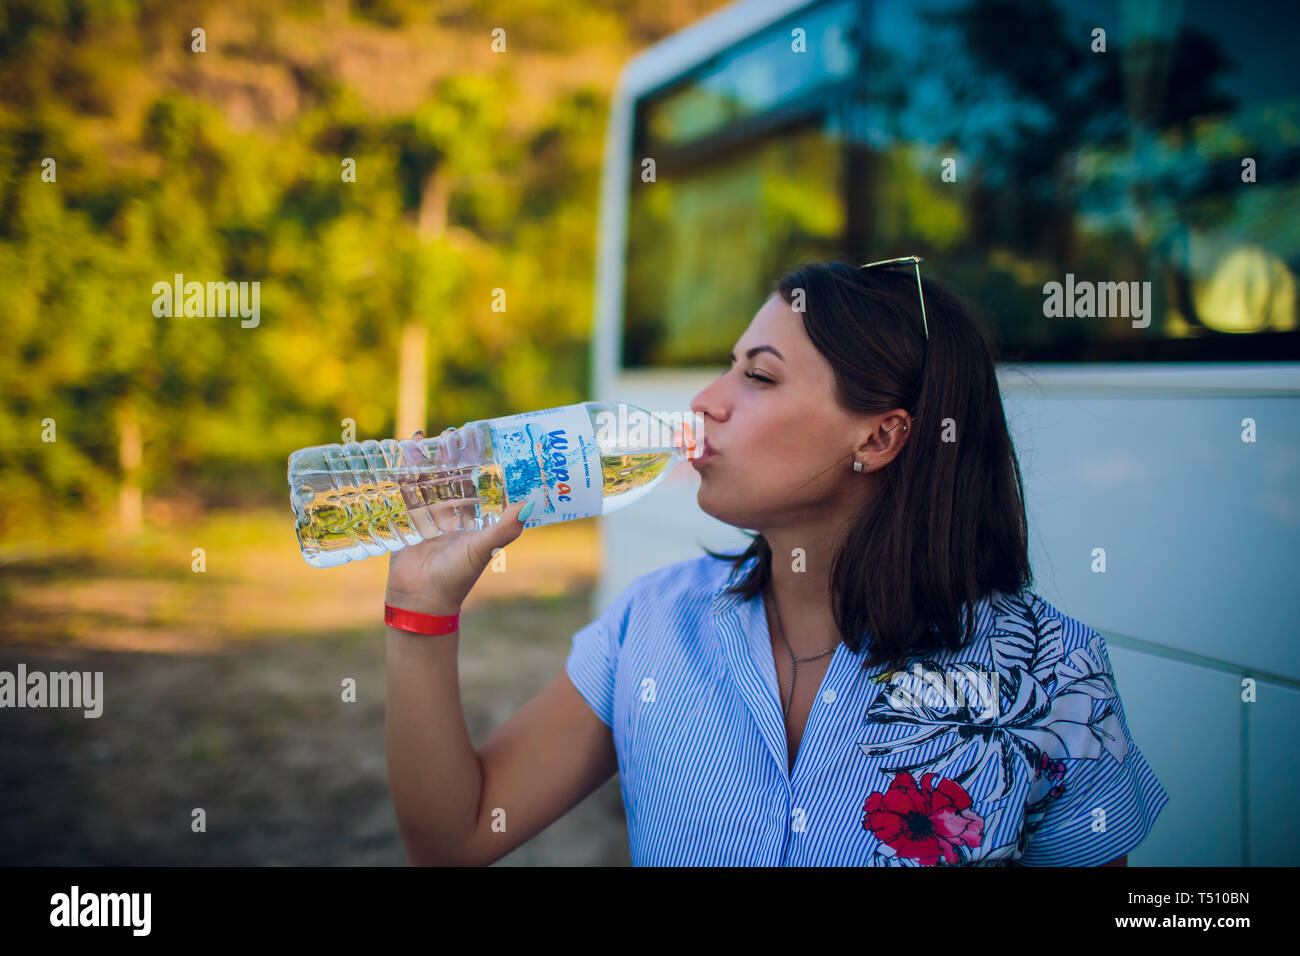 woman drinking water after running outdoors on the background of the bus, tourist. Stock Photo